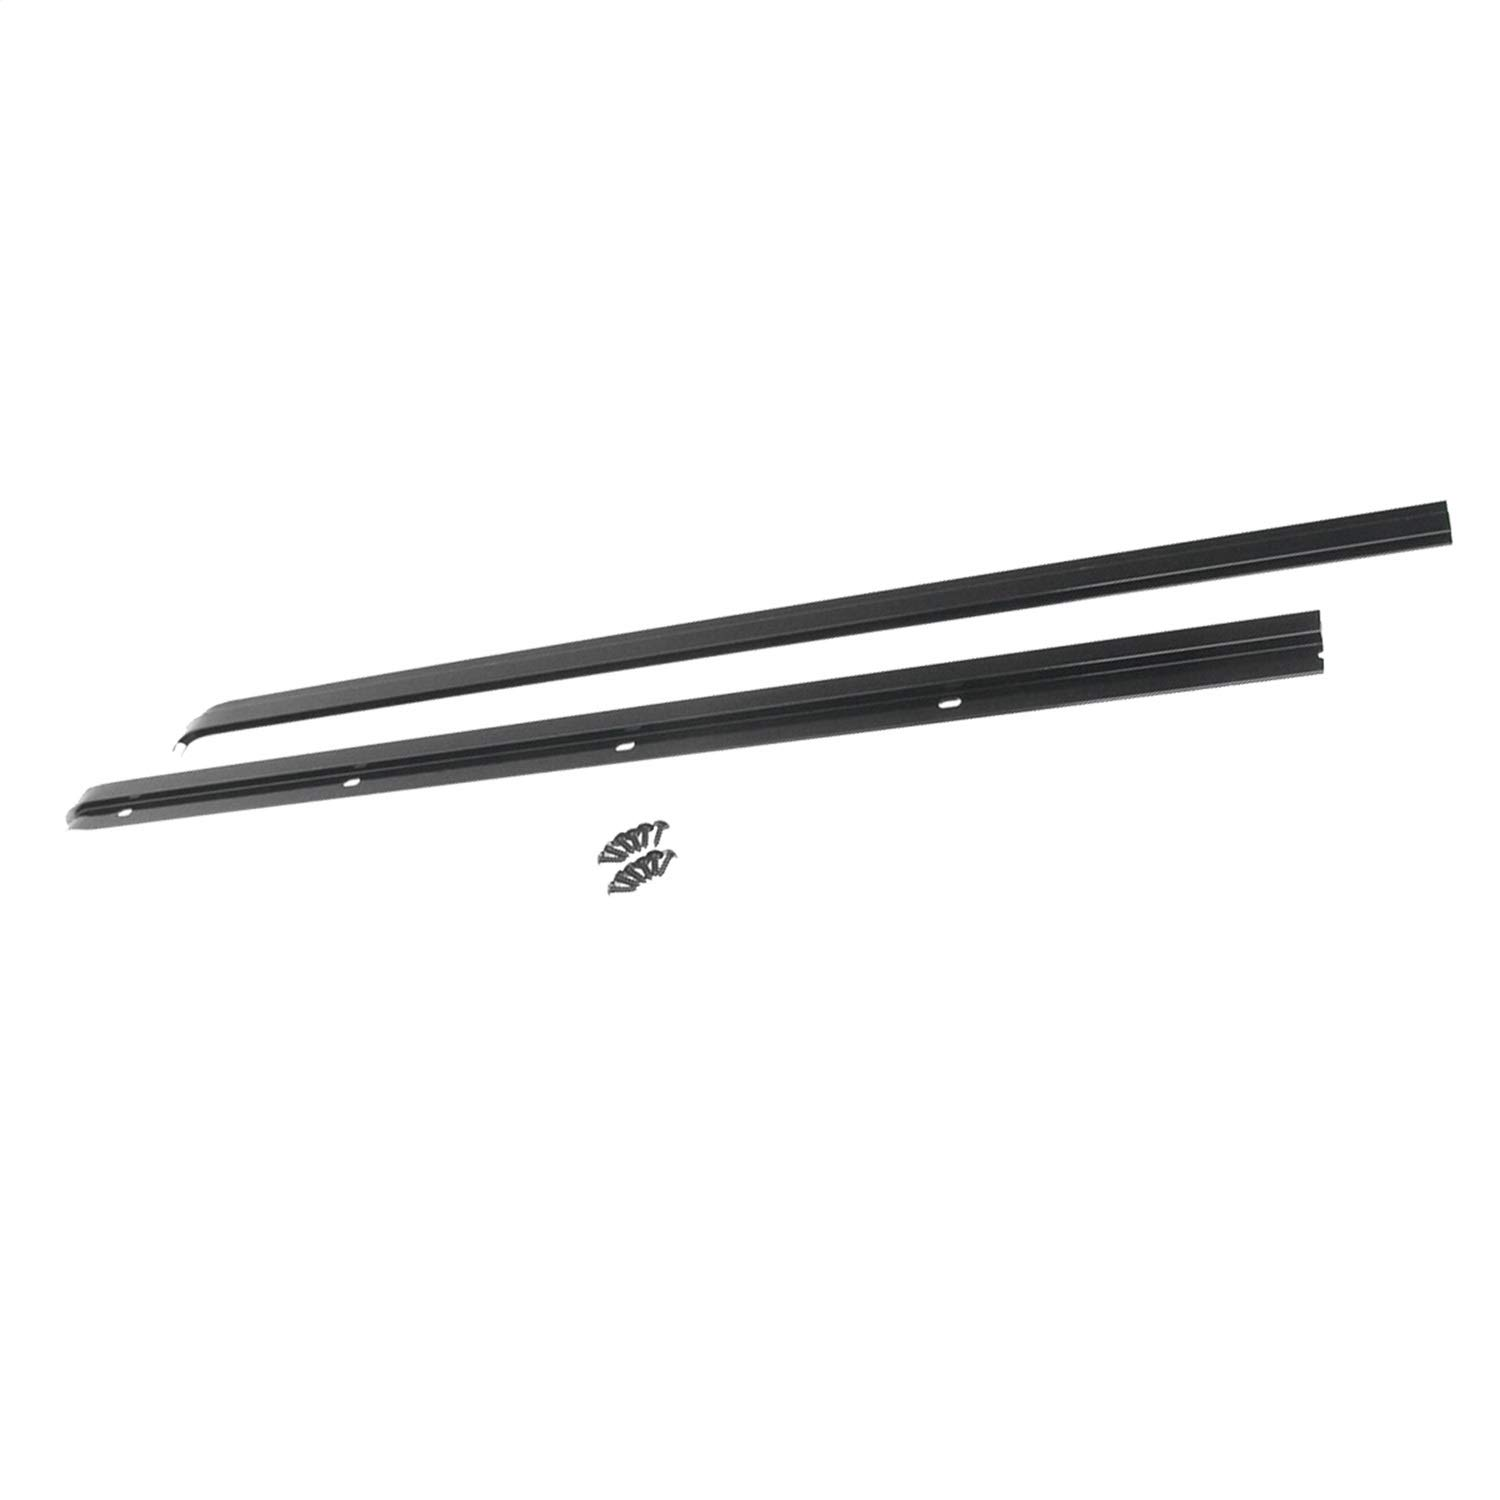 RAMPAGE PRODUCTS 901001 Soft Cab Top Windshield Channel for 1976-1995 Jeep CJ, Wrangler YJ, Black